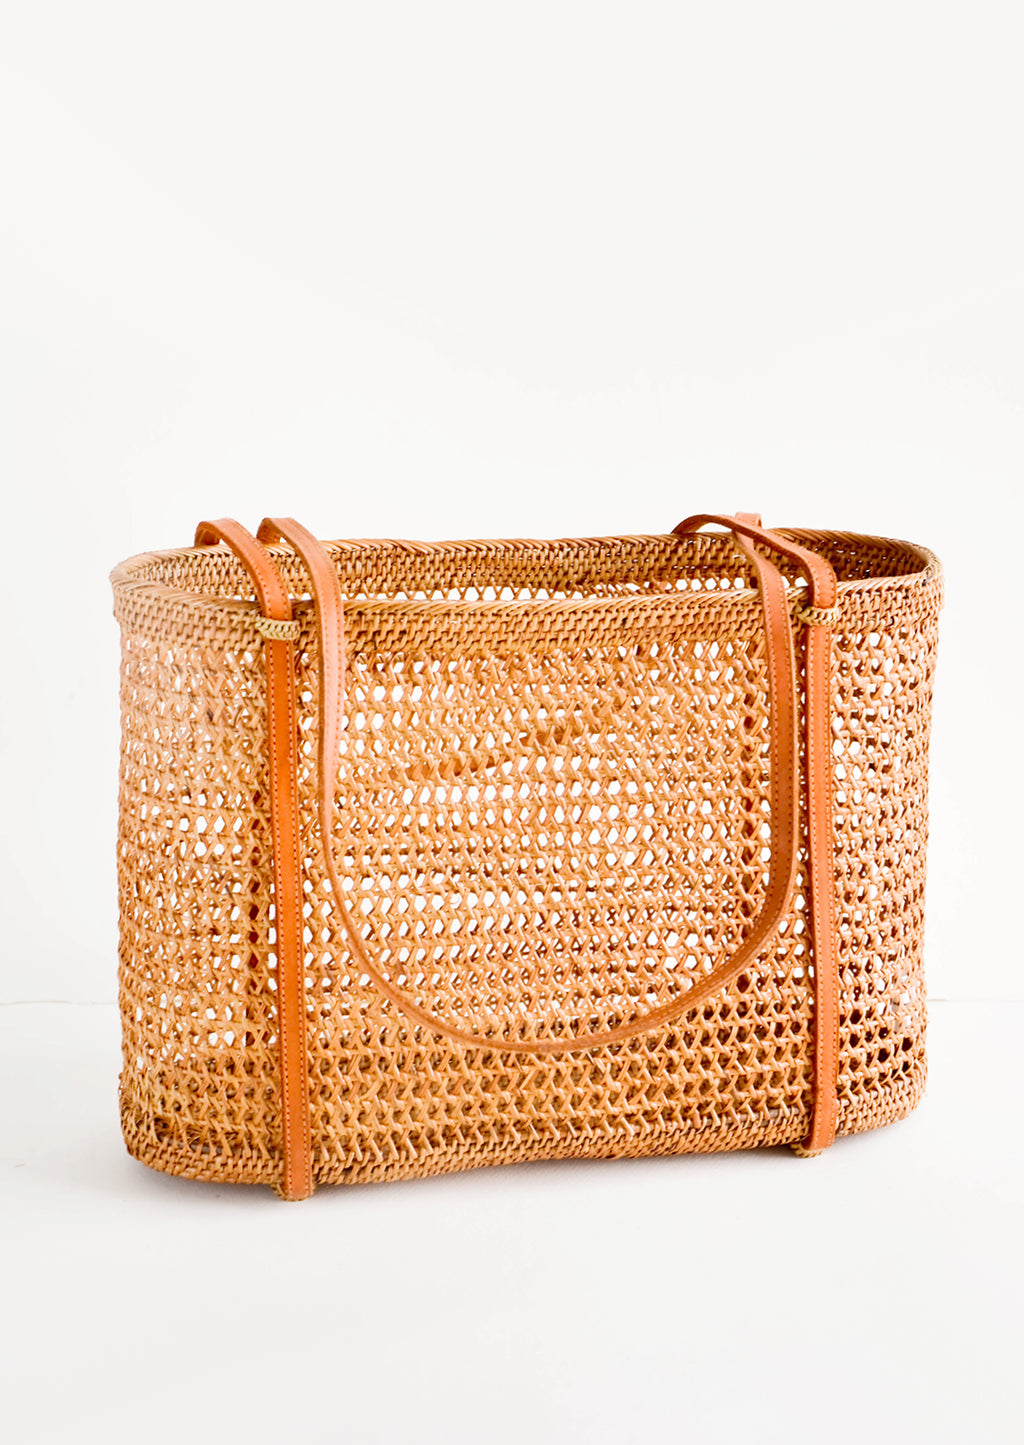 1: East-west tote bag made from open weave rattan, thin, tanned leather shoulder straps wrap around the bottom of the bag